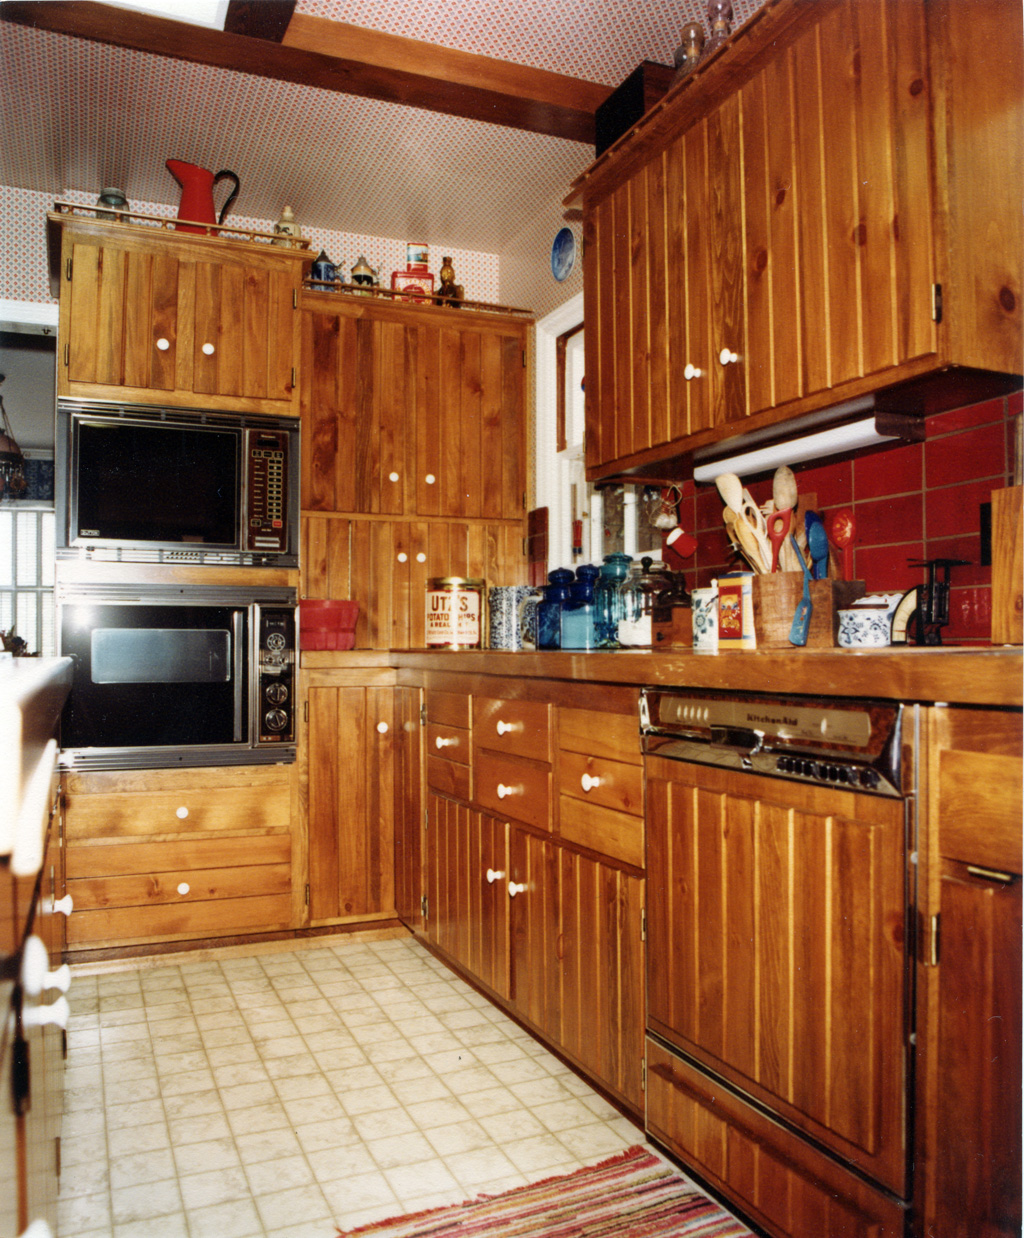 Kitchen And Bath Remodeling: Early American Kitchen Remodel